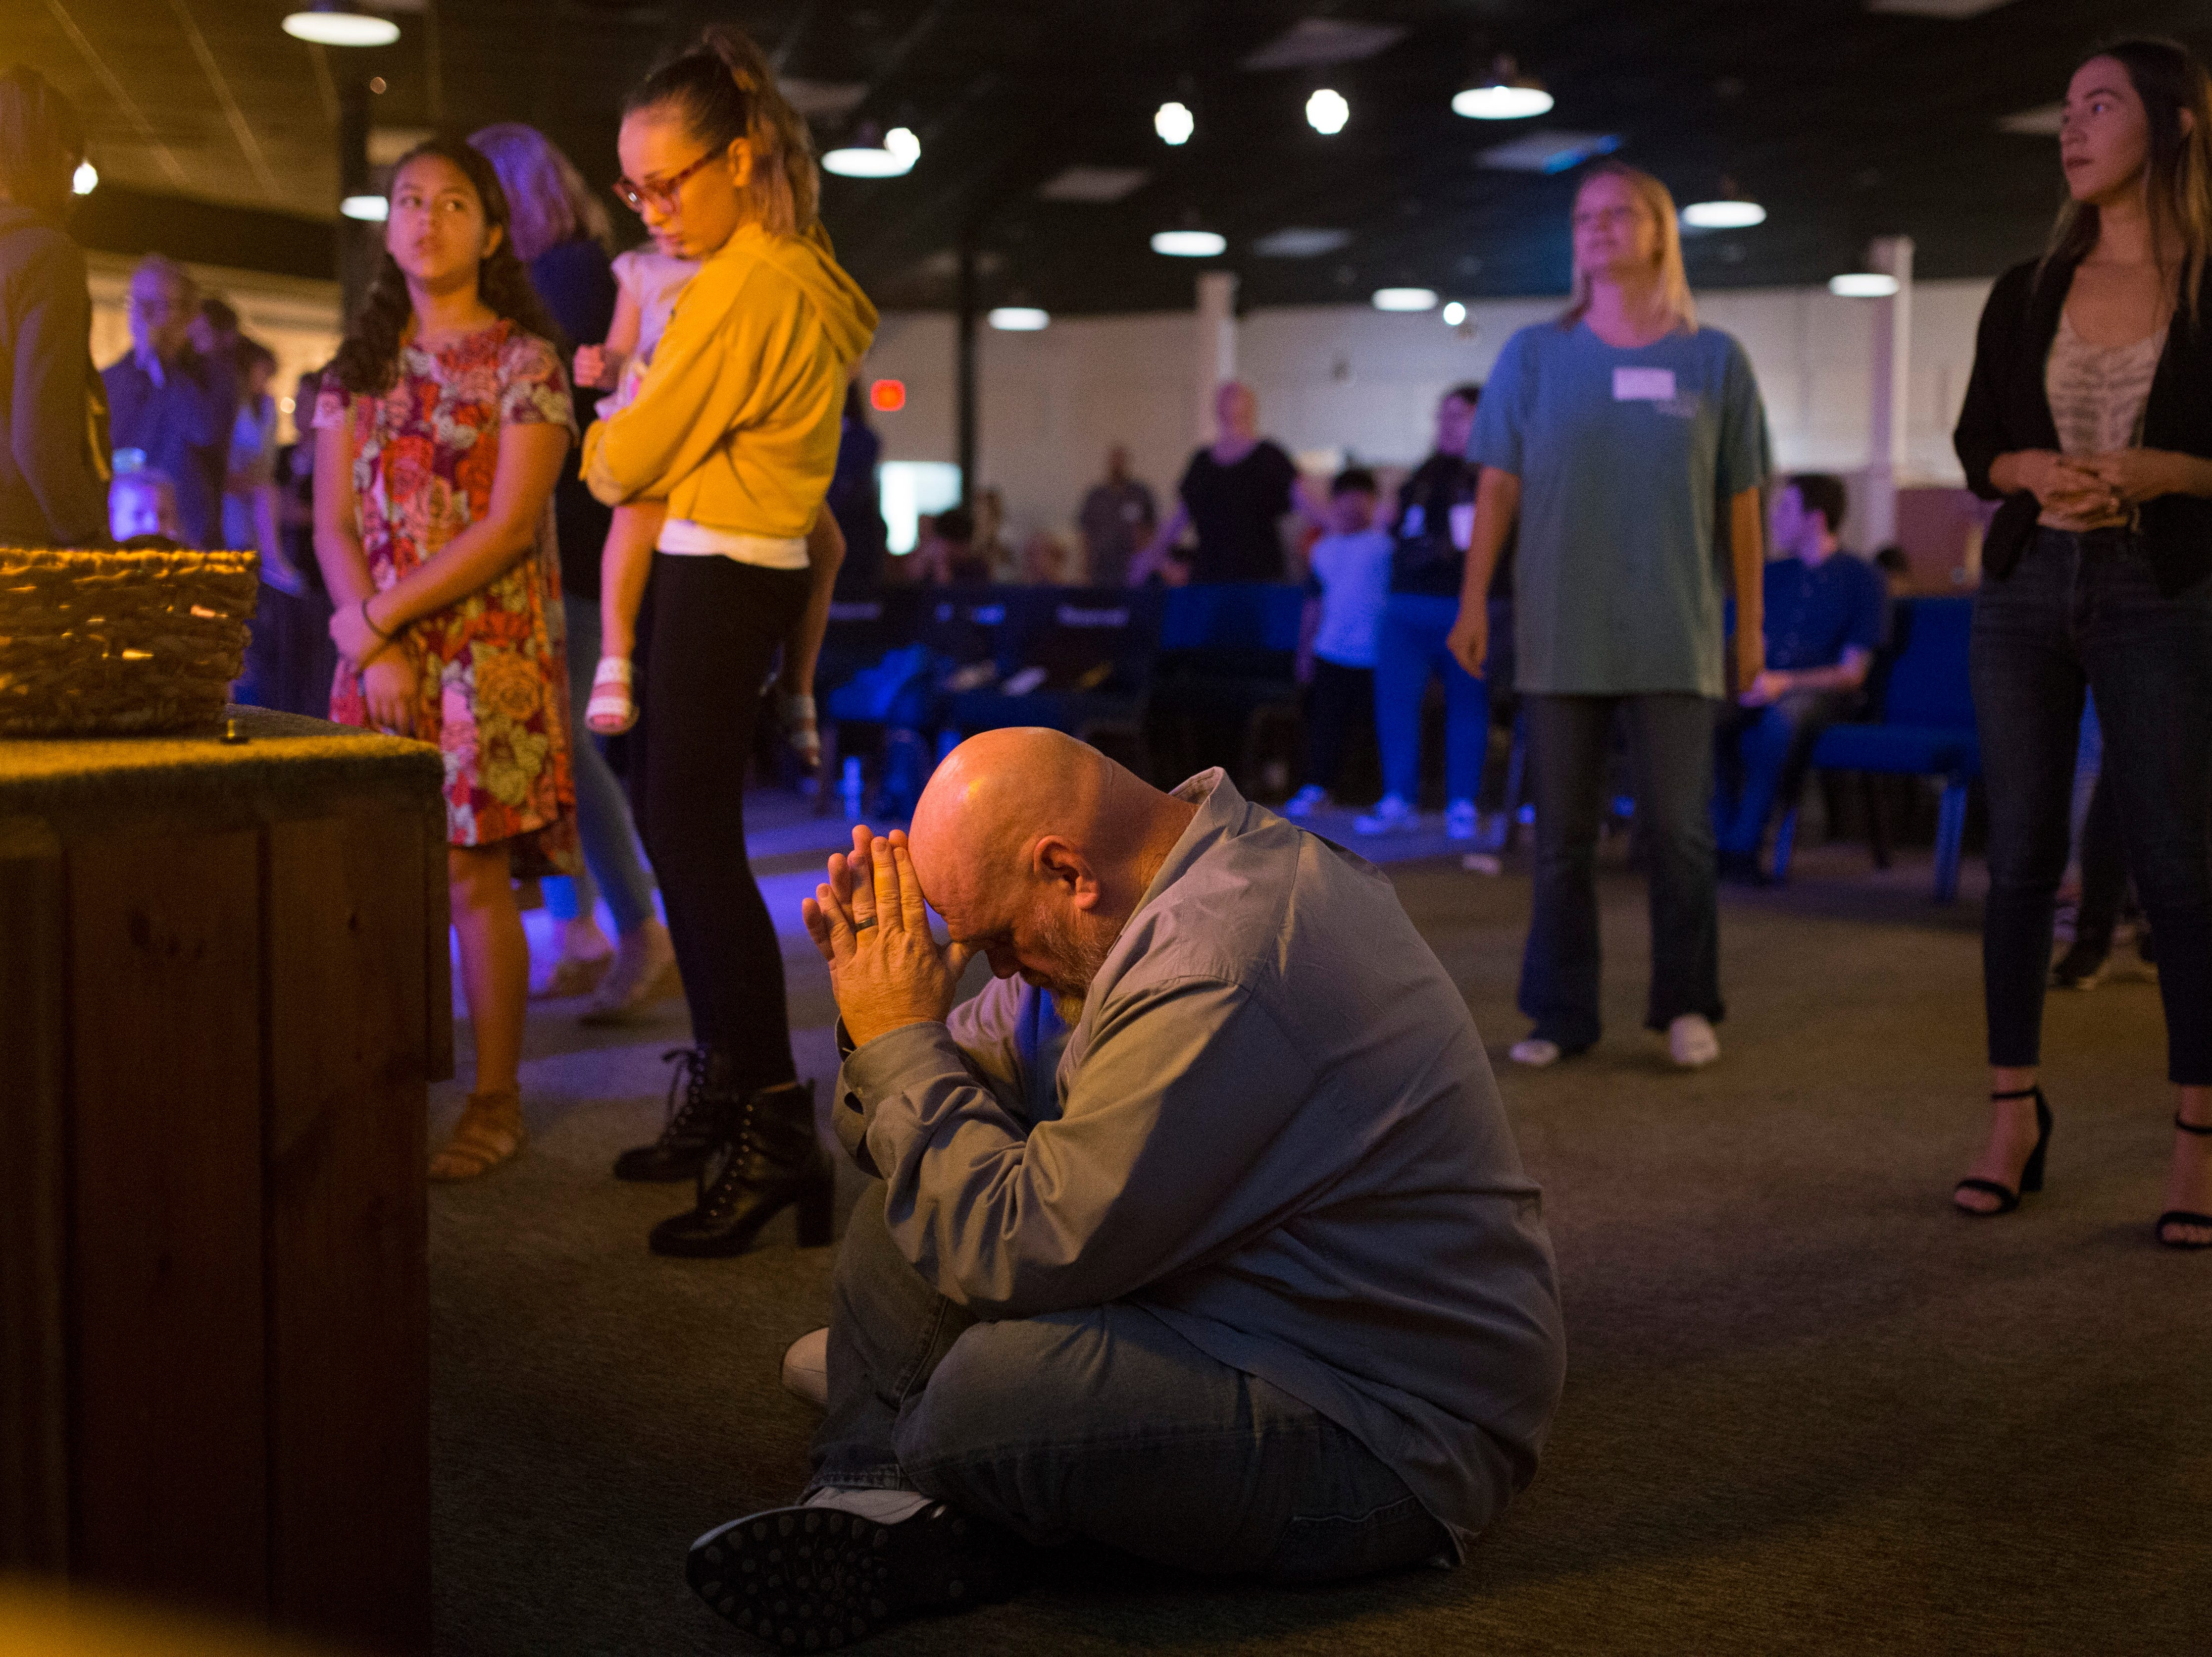 Troy Walters prays at church on Wednesday, Oct. 24, 2018 in Corpus Christi. Walters has seen firsthand the toll drug addiction can take on a family. He's also a drug counselor forSouth Texas Substance Abuse Recovery Services.